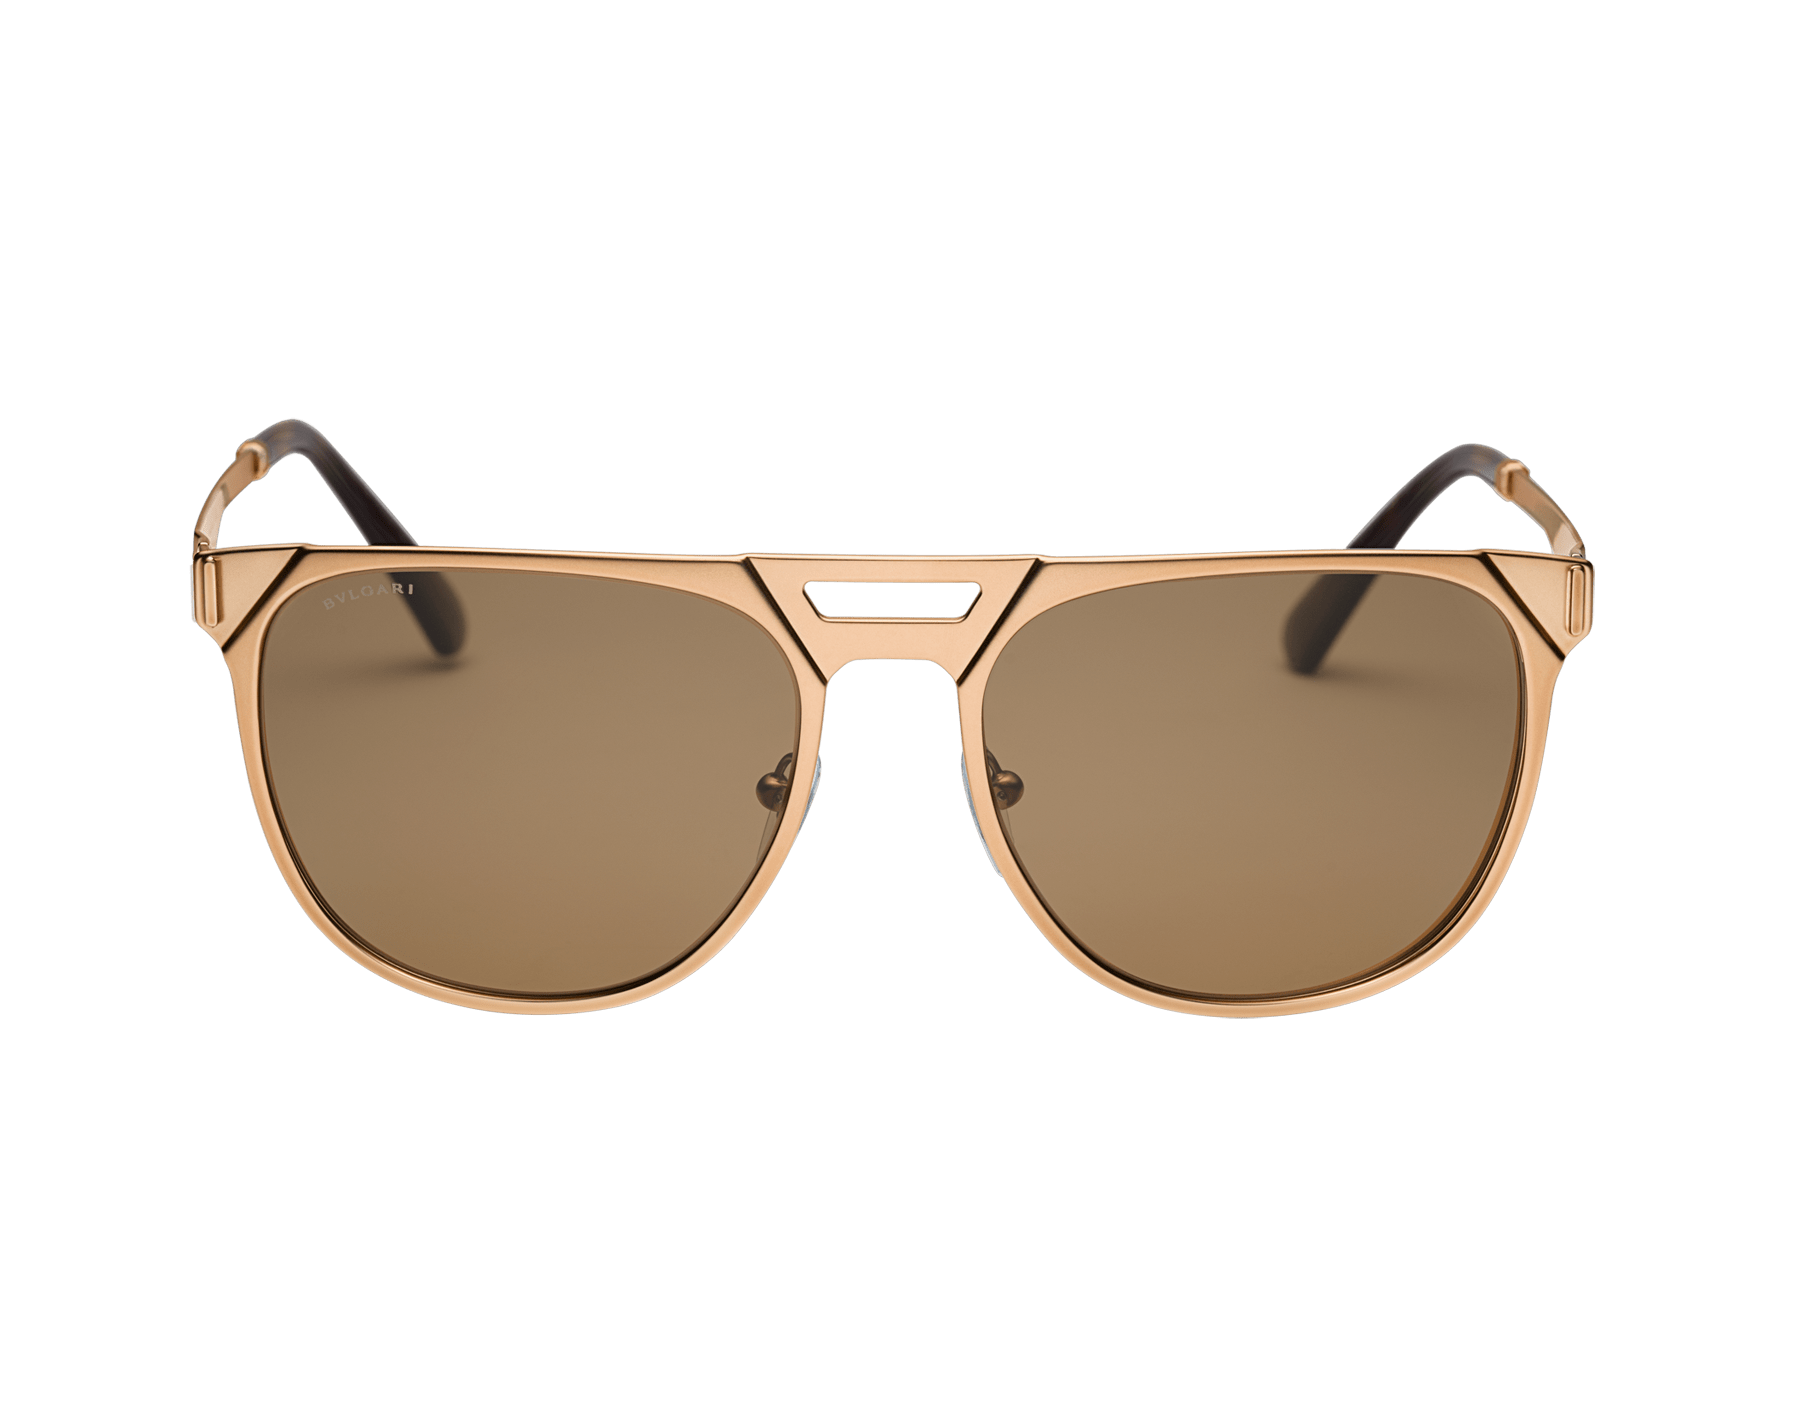 Bvlgari Octo squared pilot gold plated metal sunglasses with polar lenses. 903688 image 2